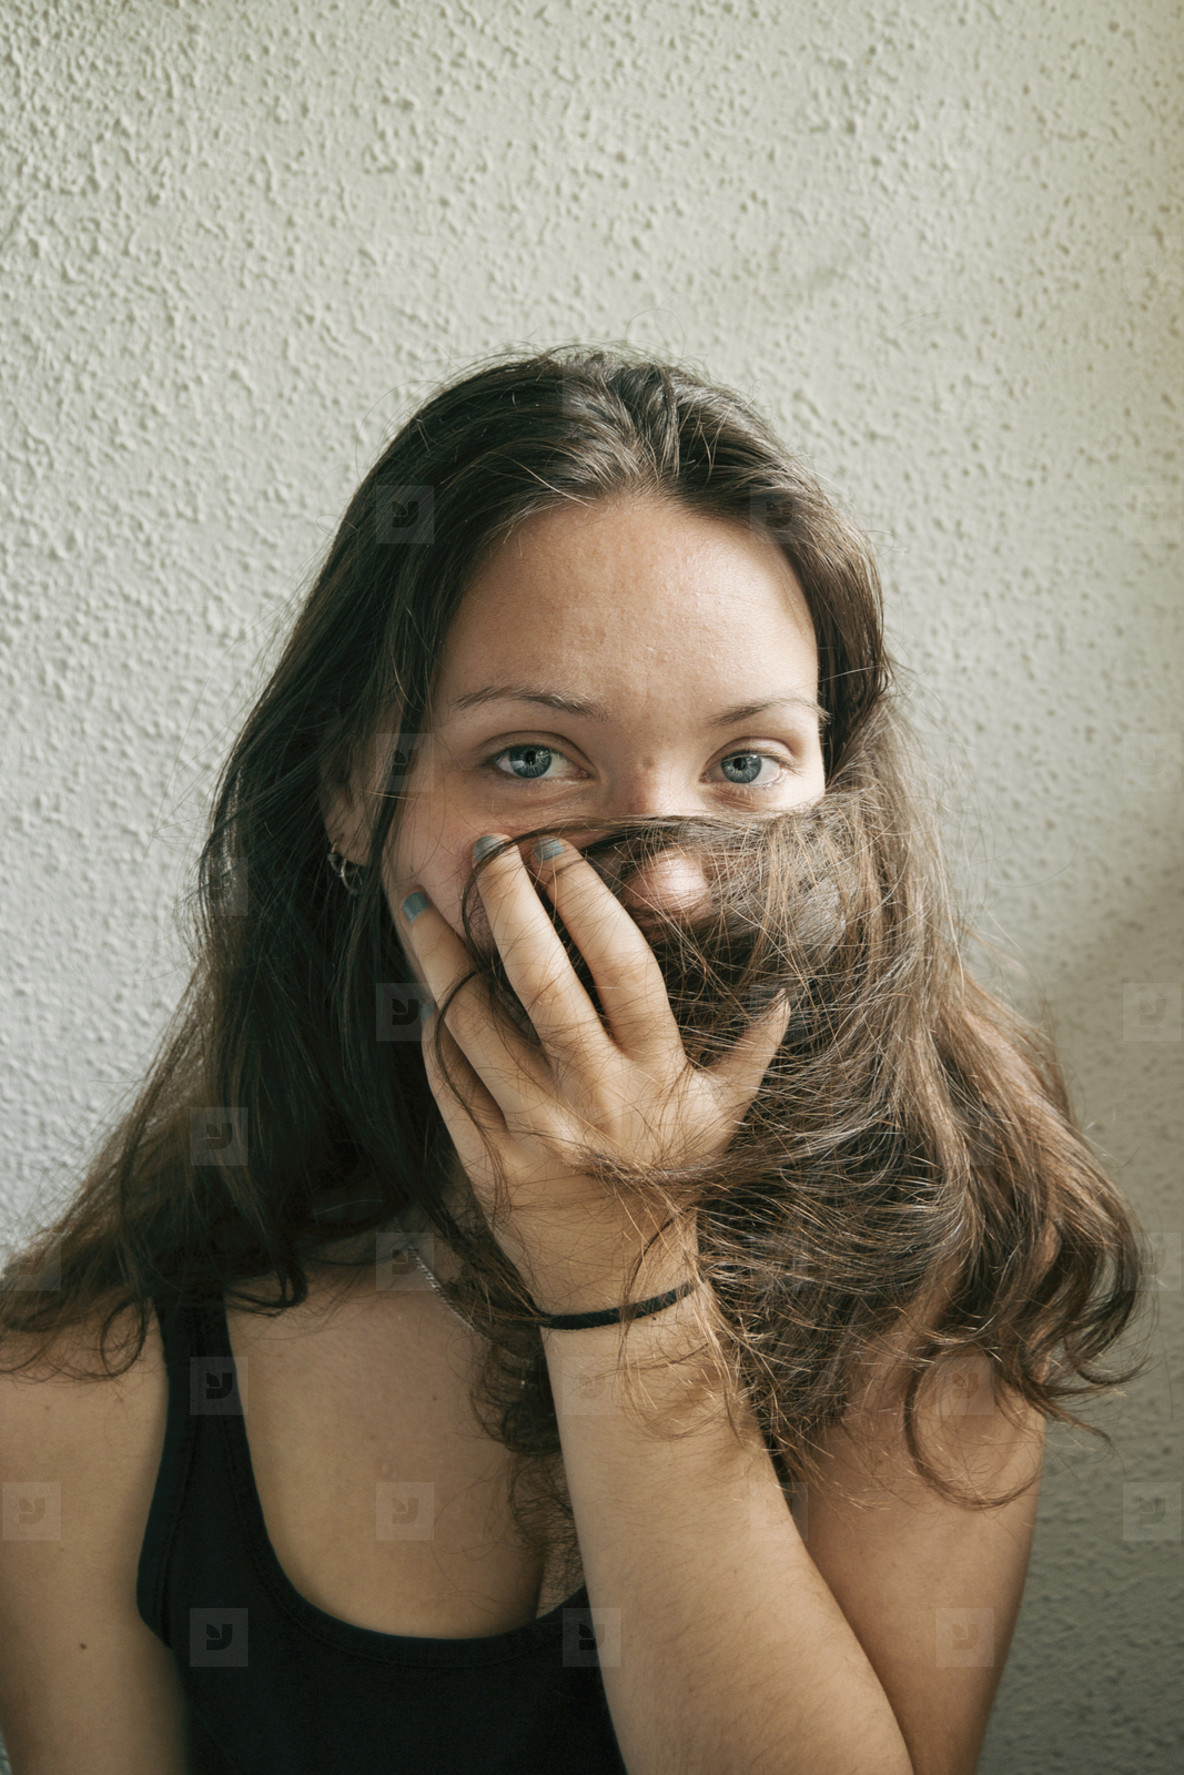 Long haired girl with blue eyes covering her hair